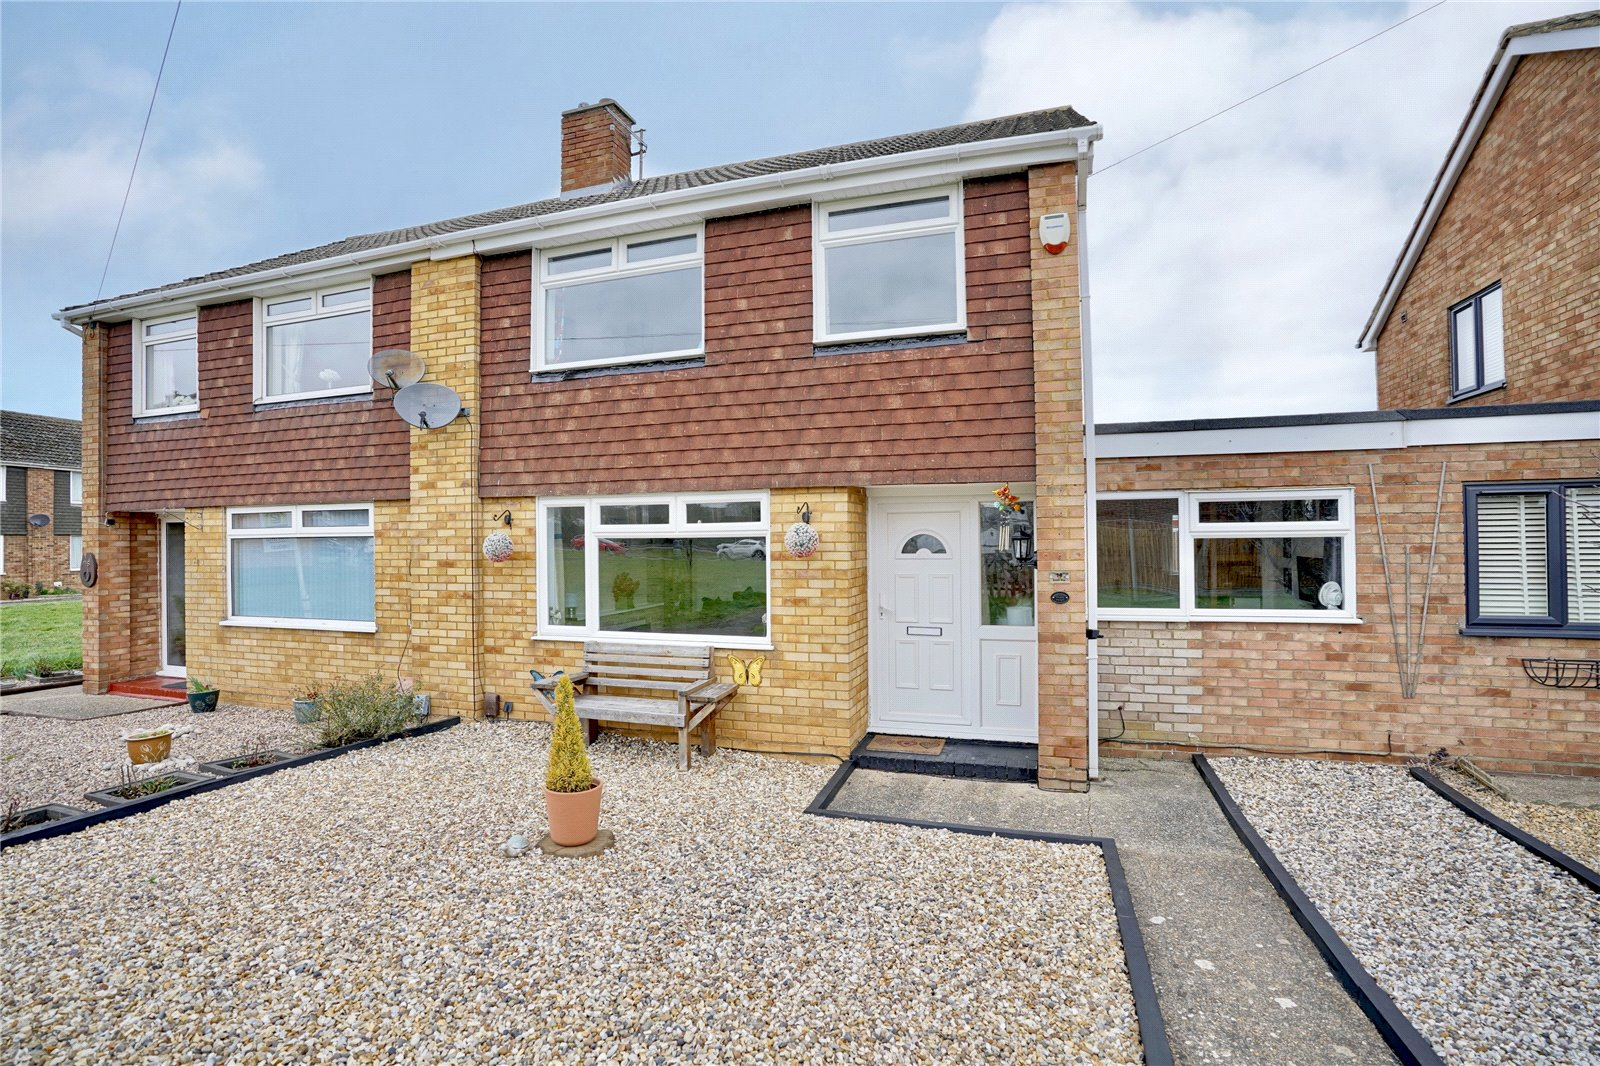 3 bed house for sale in Booth Way, Little Paxton  - Property Image 1